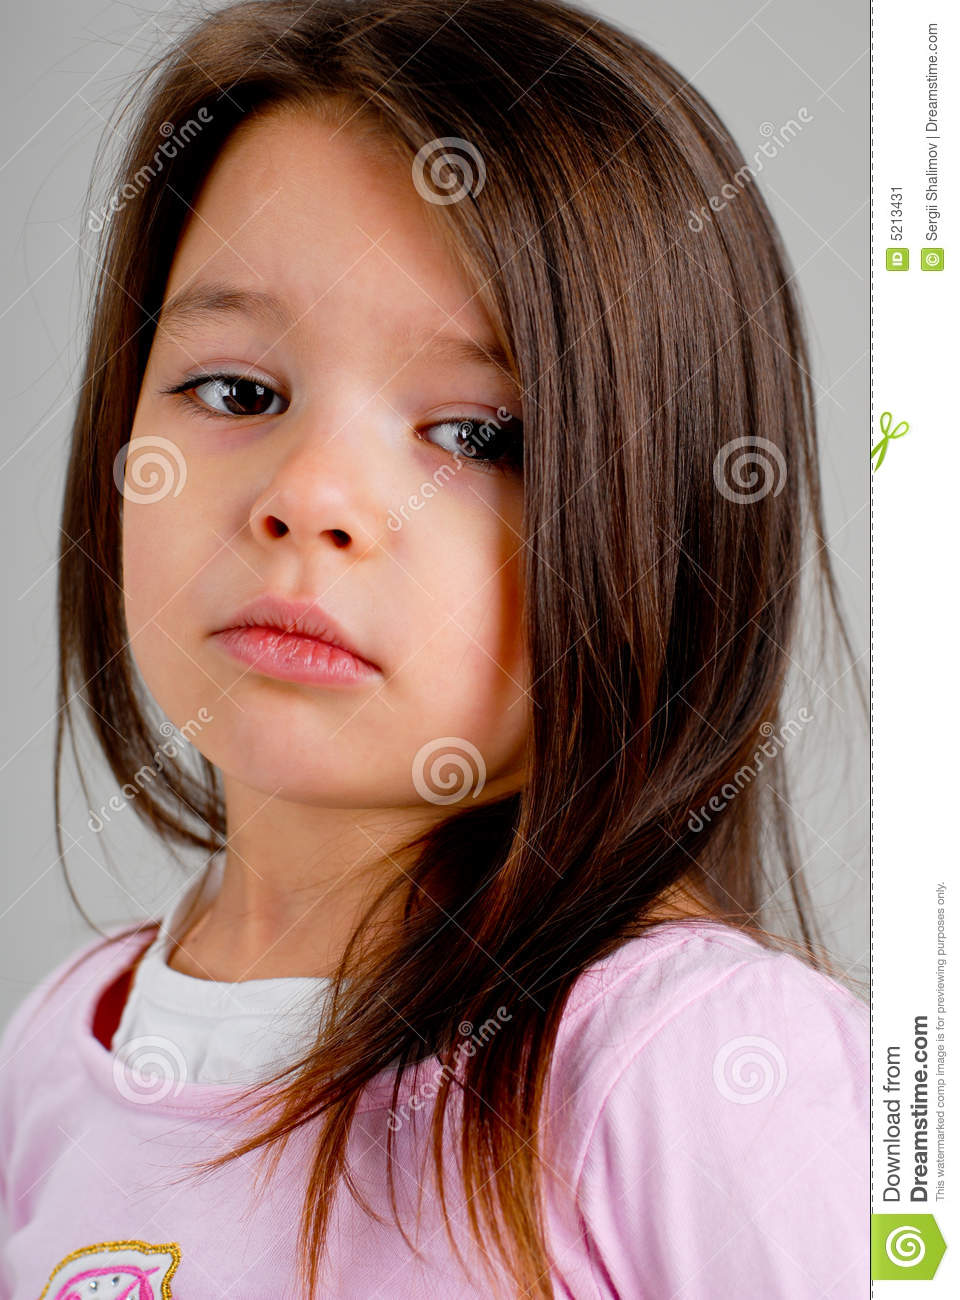 little-girl-brown-hair-5213431.jpg